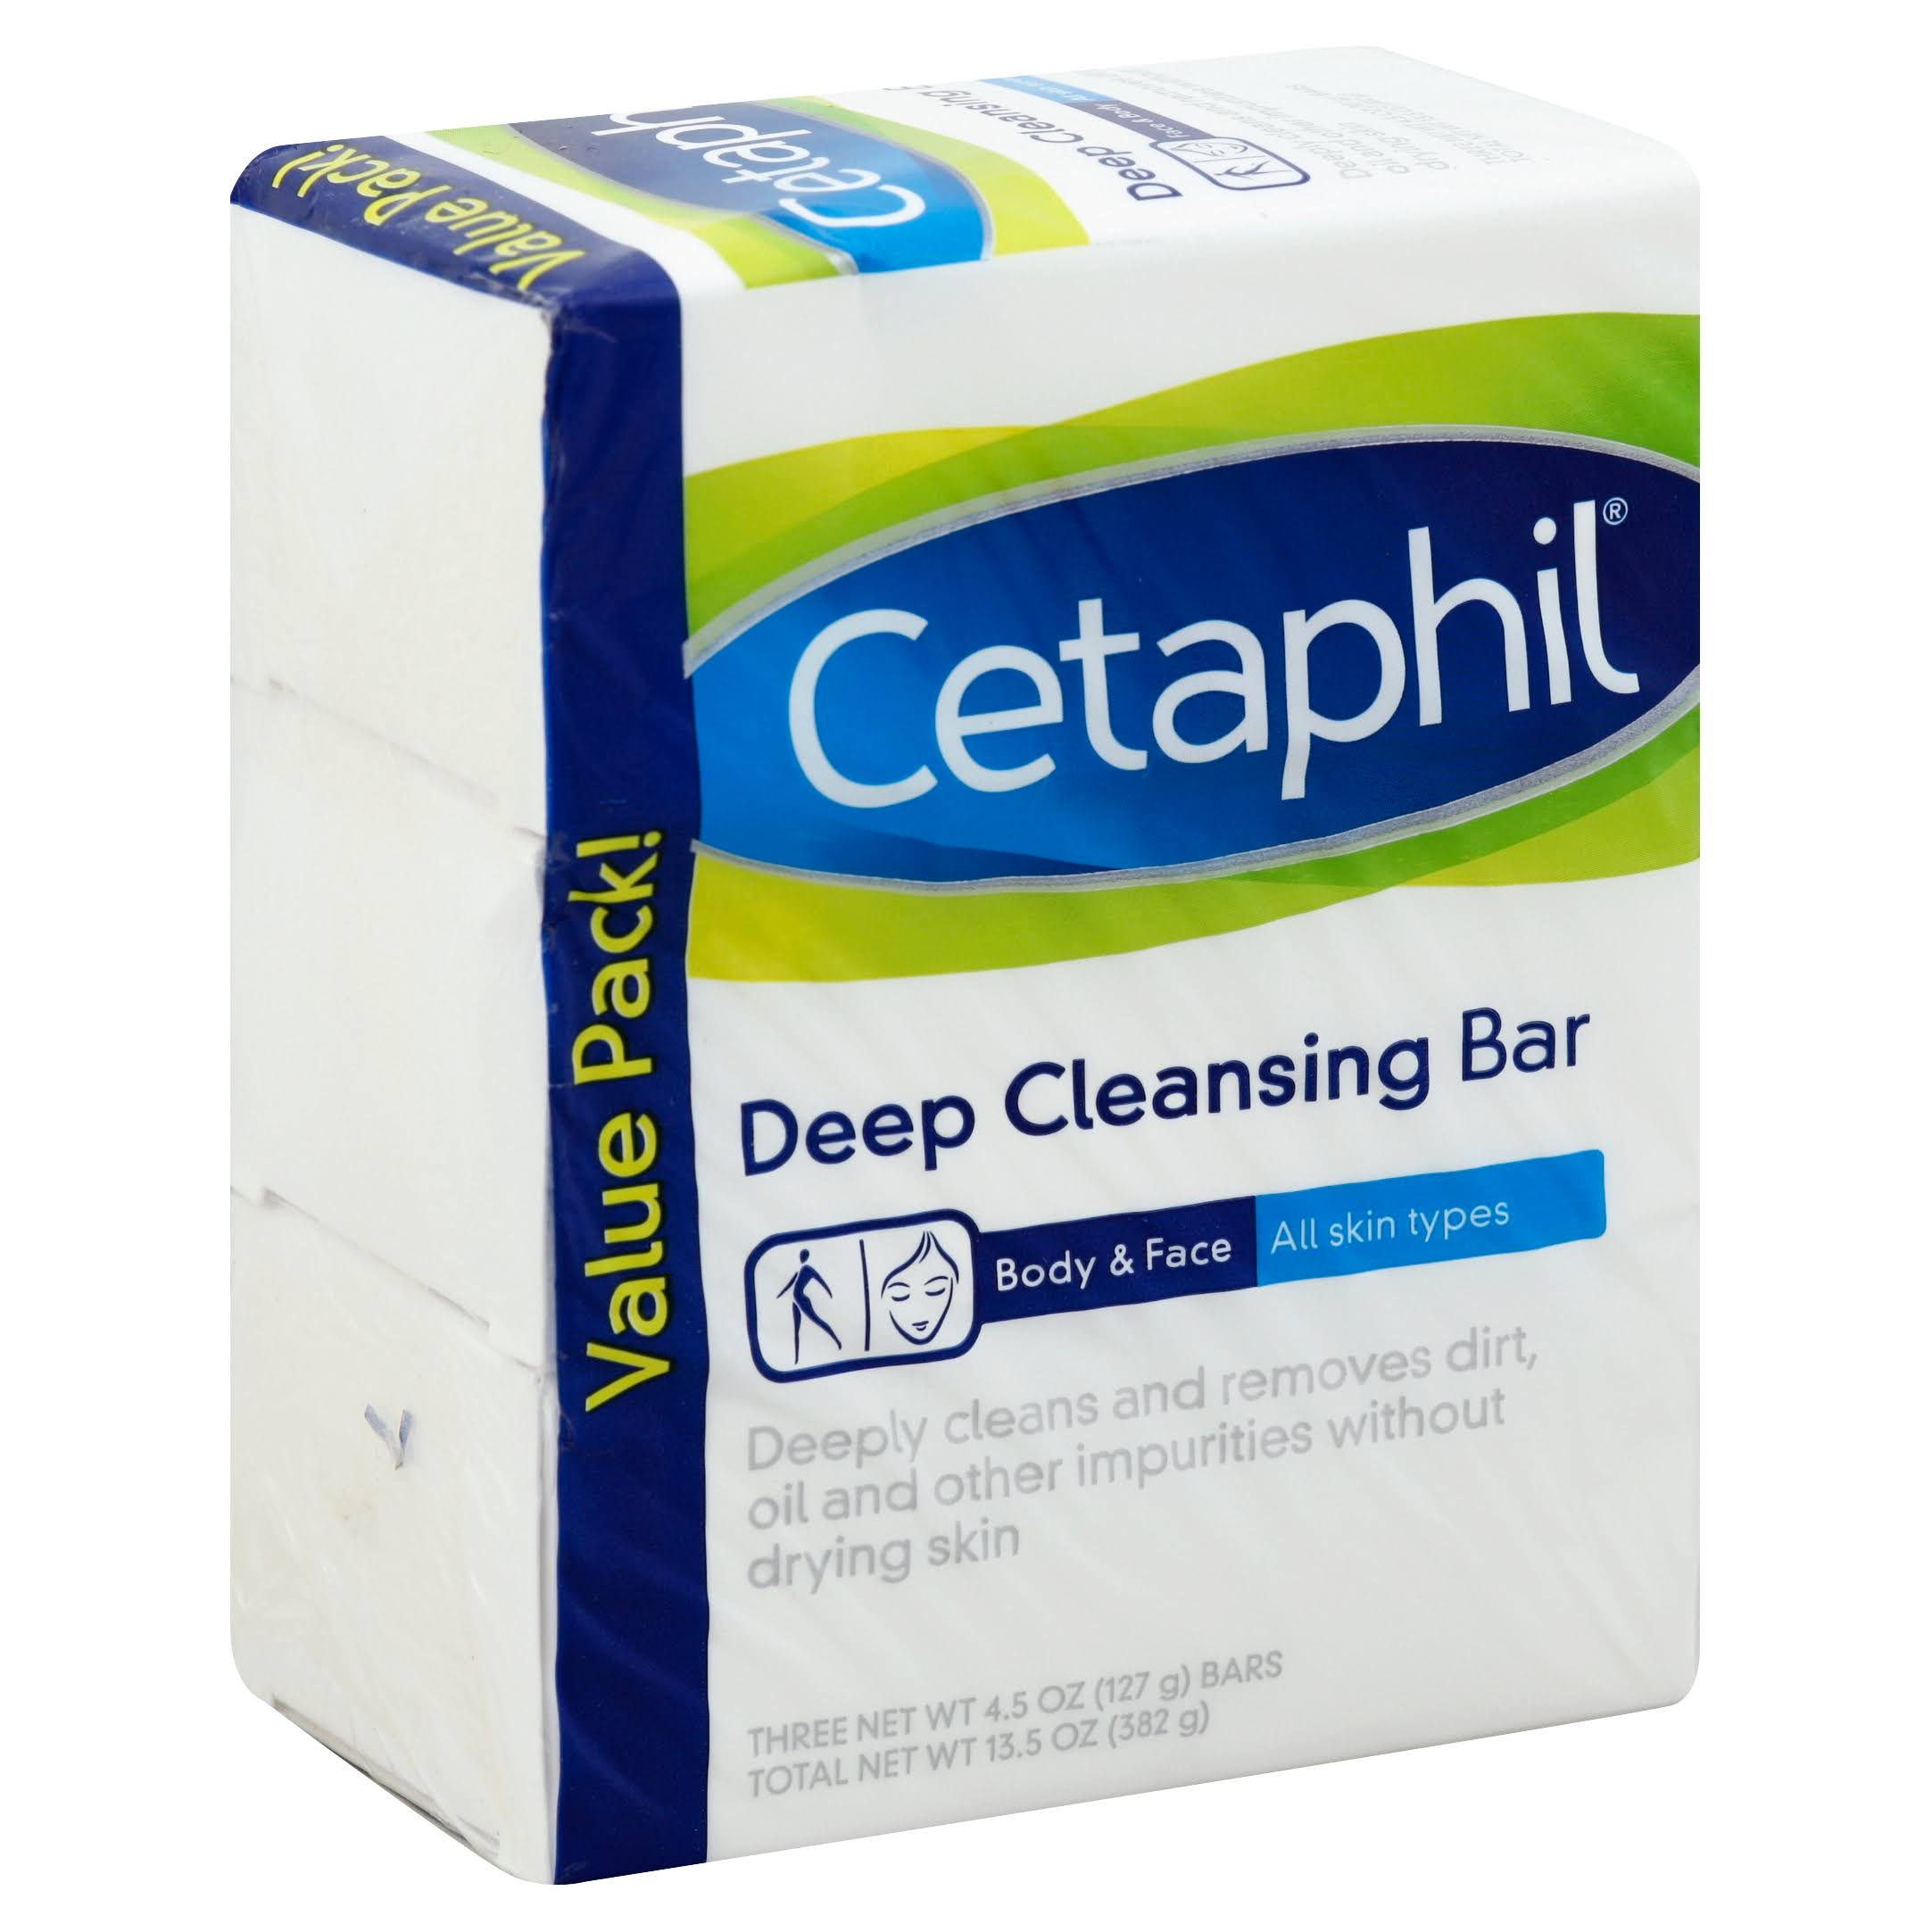 Cetaphil Deep Cleansing Face & Body Bar - Pack of 3